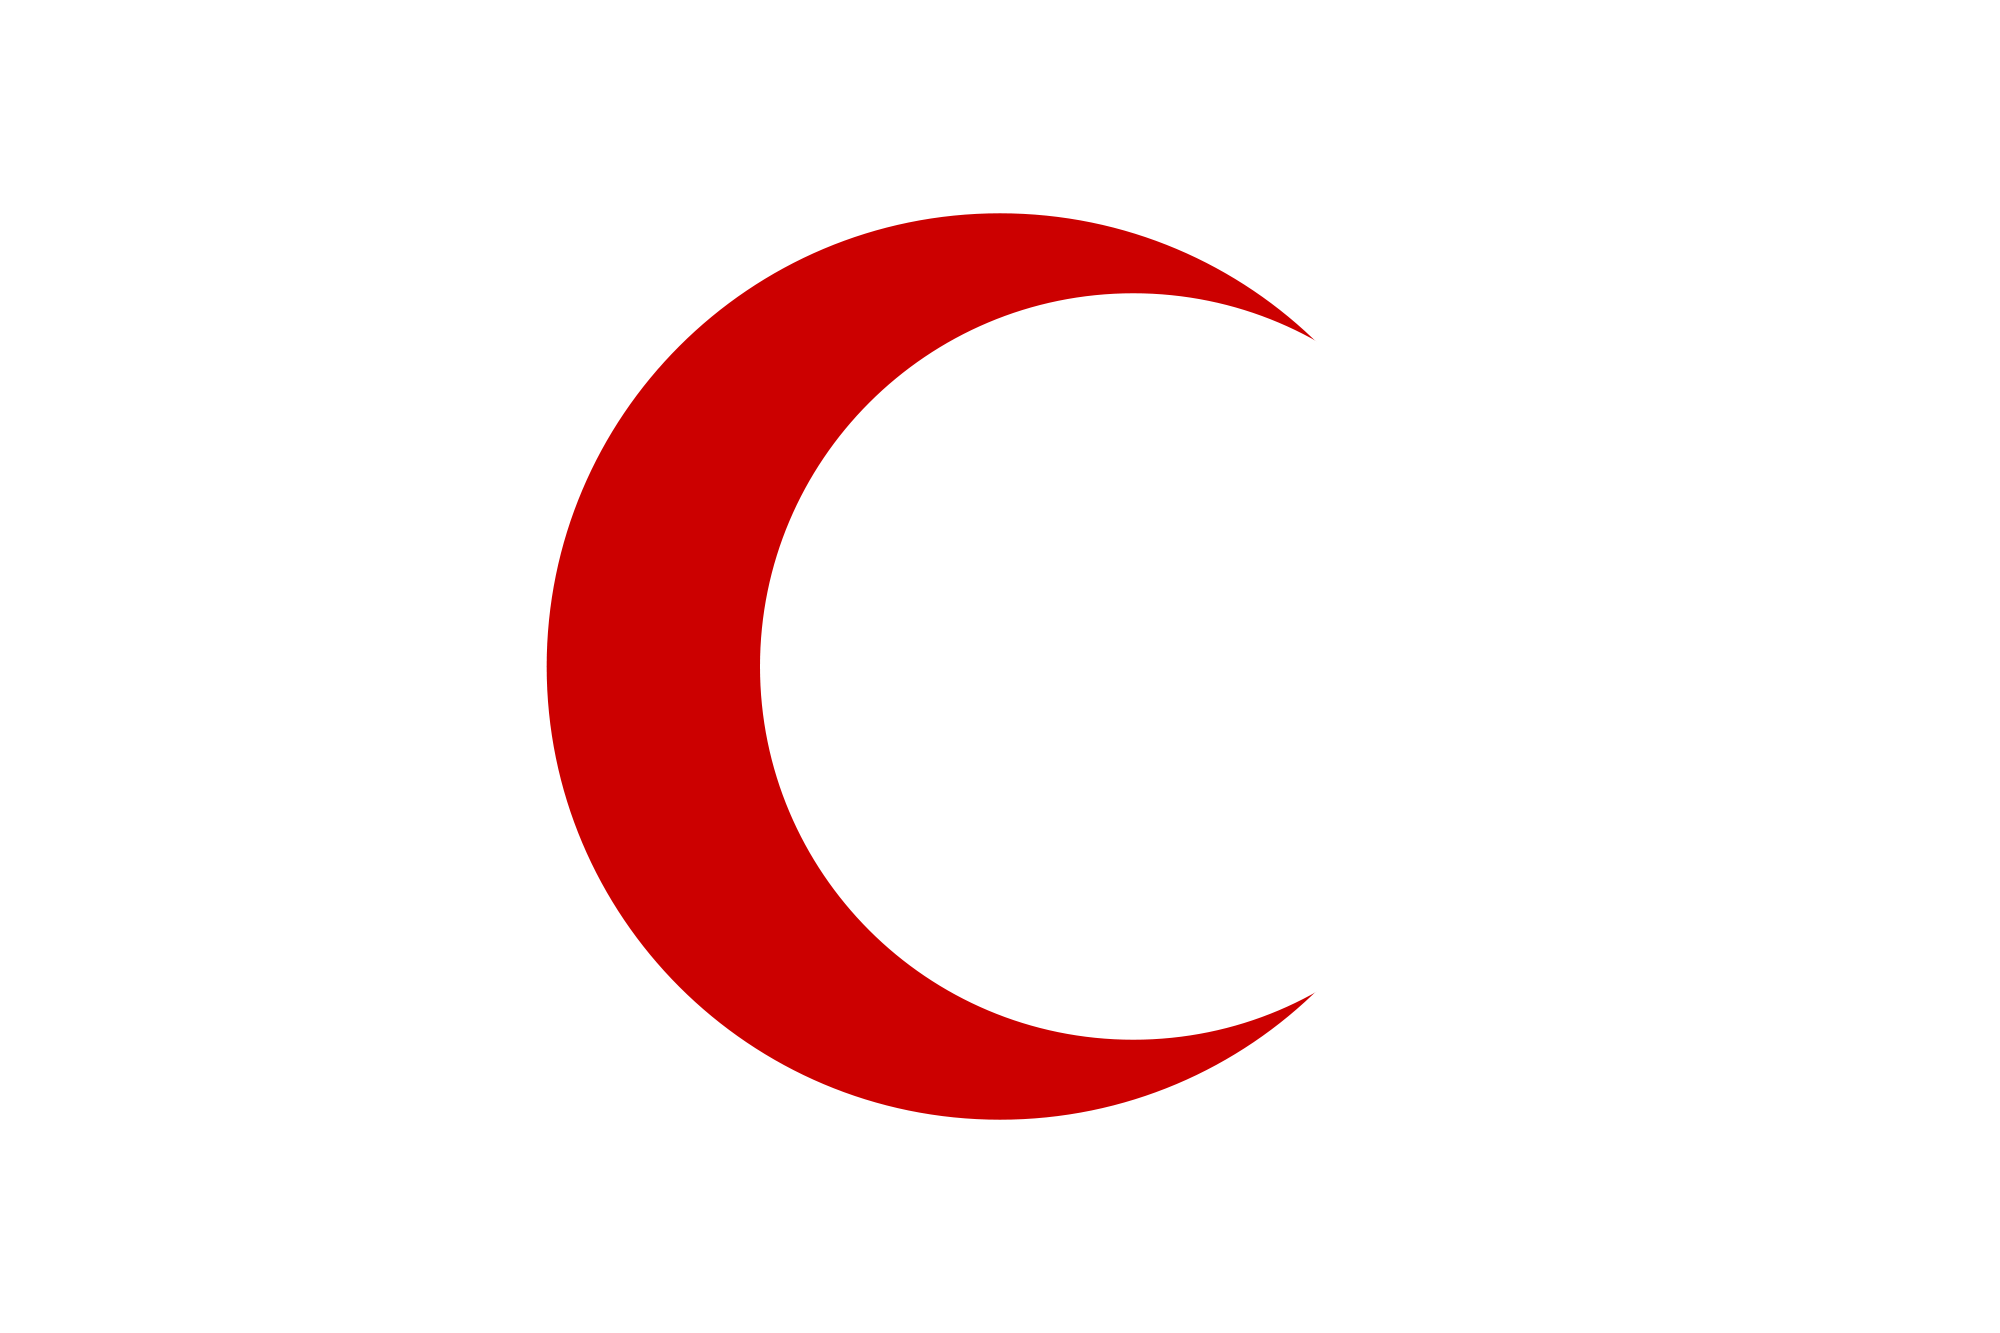 File Flag Of The Red Crescent Svg Png 2000 1333 Http Commons Wikimedia Org Wiki File Flag Of The Red Crescent Svg Crescent Logo Clipart Flag